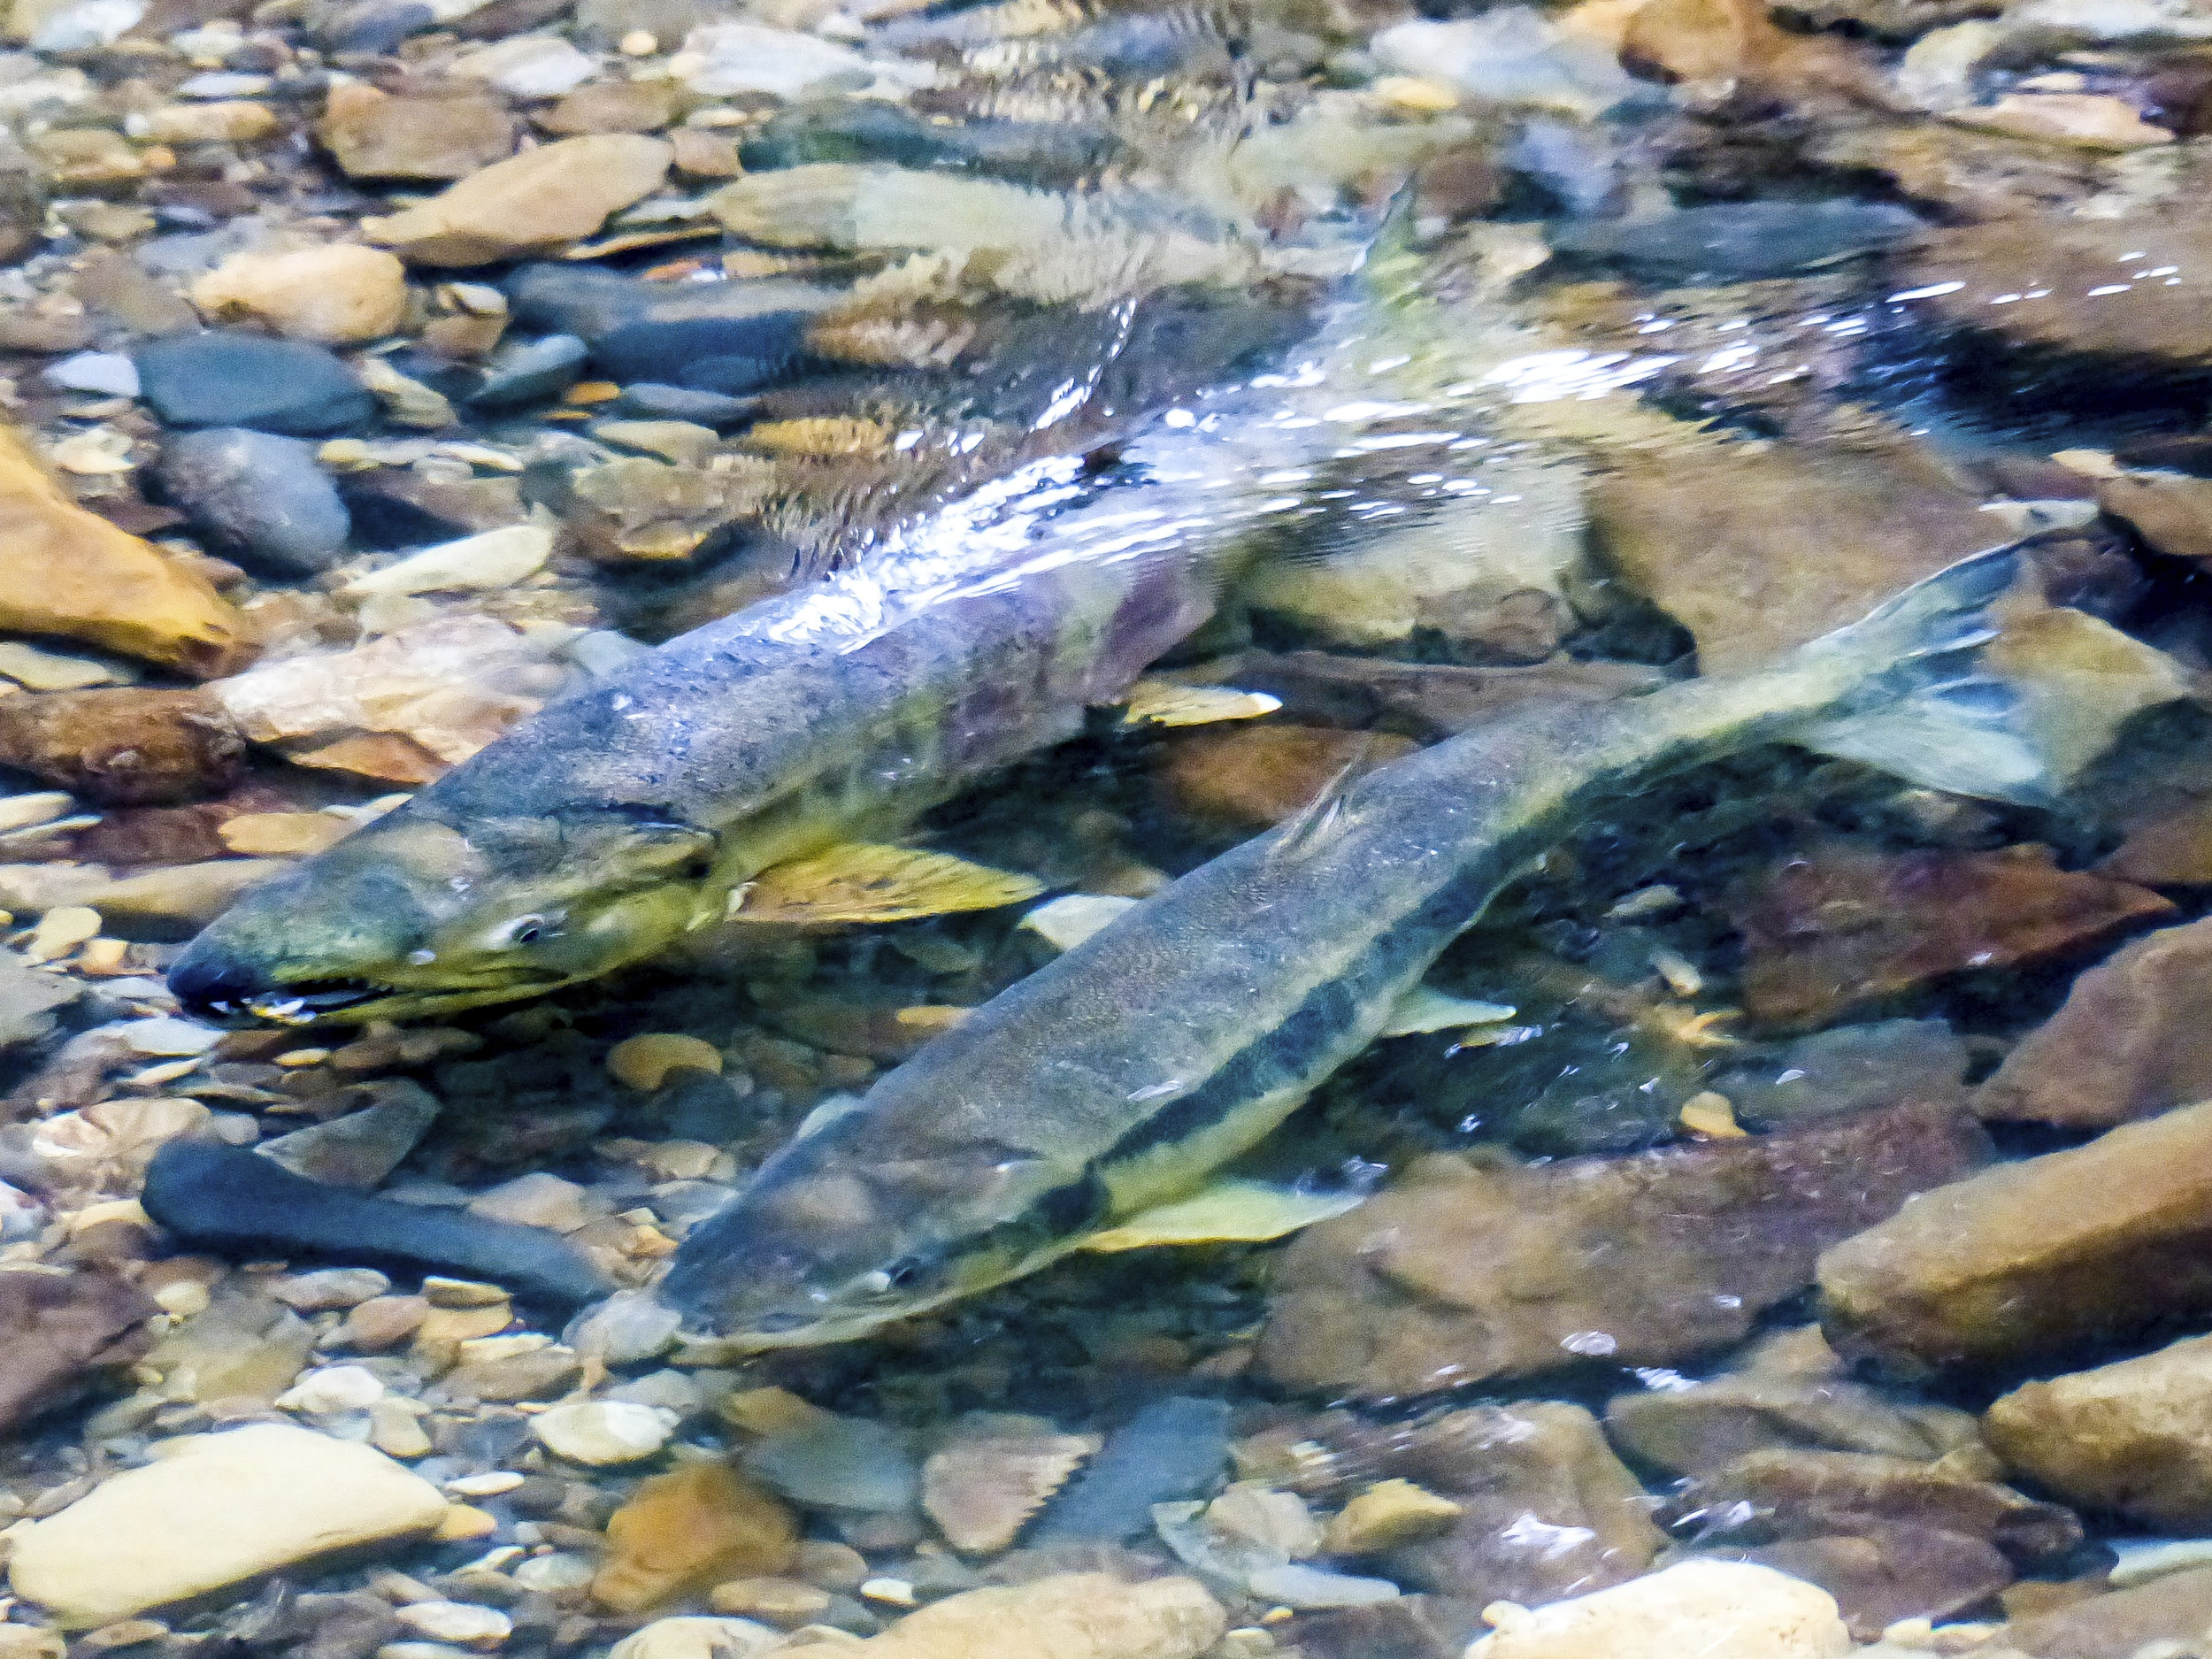 First run of chum salmon in Ellsworth Creek.Photo by David Ryan / The Nature Conservancy.